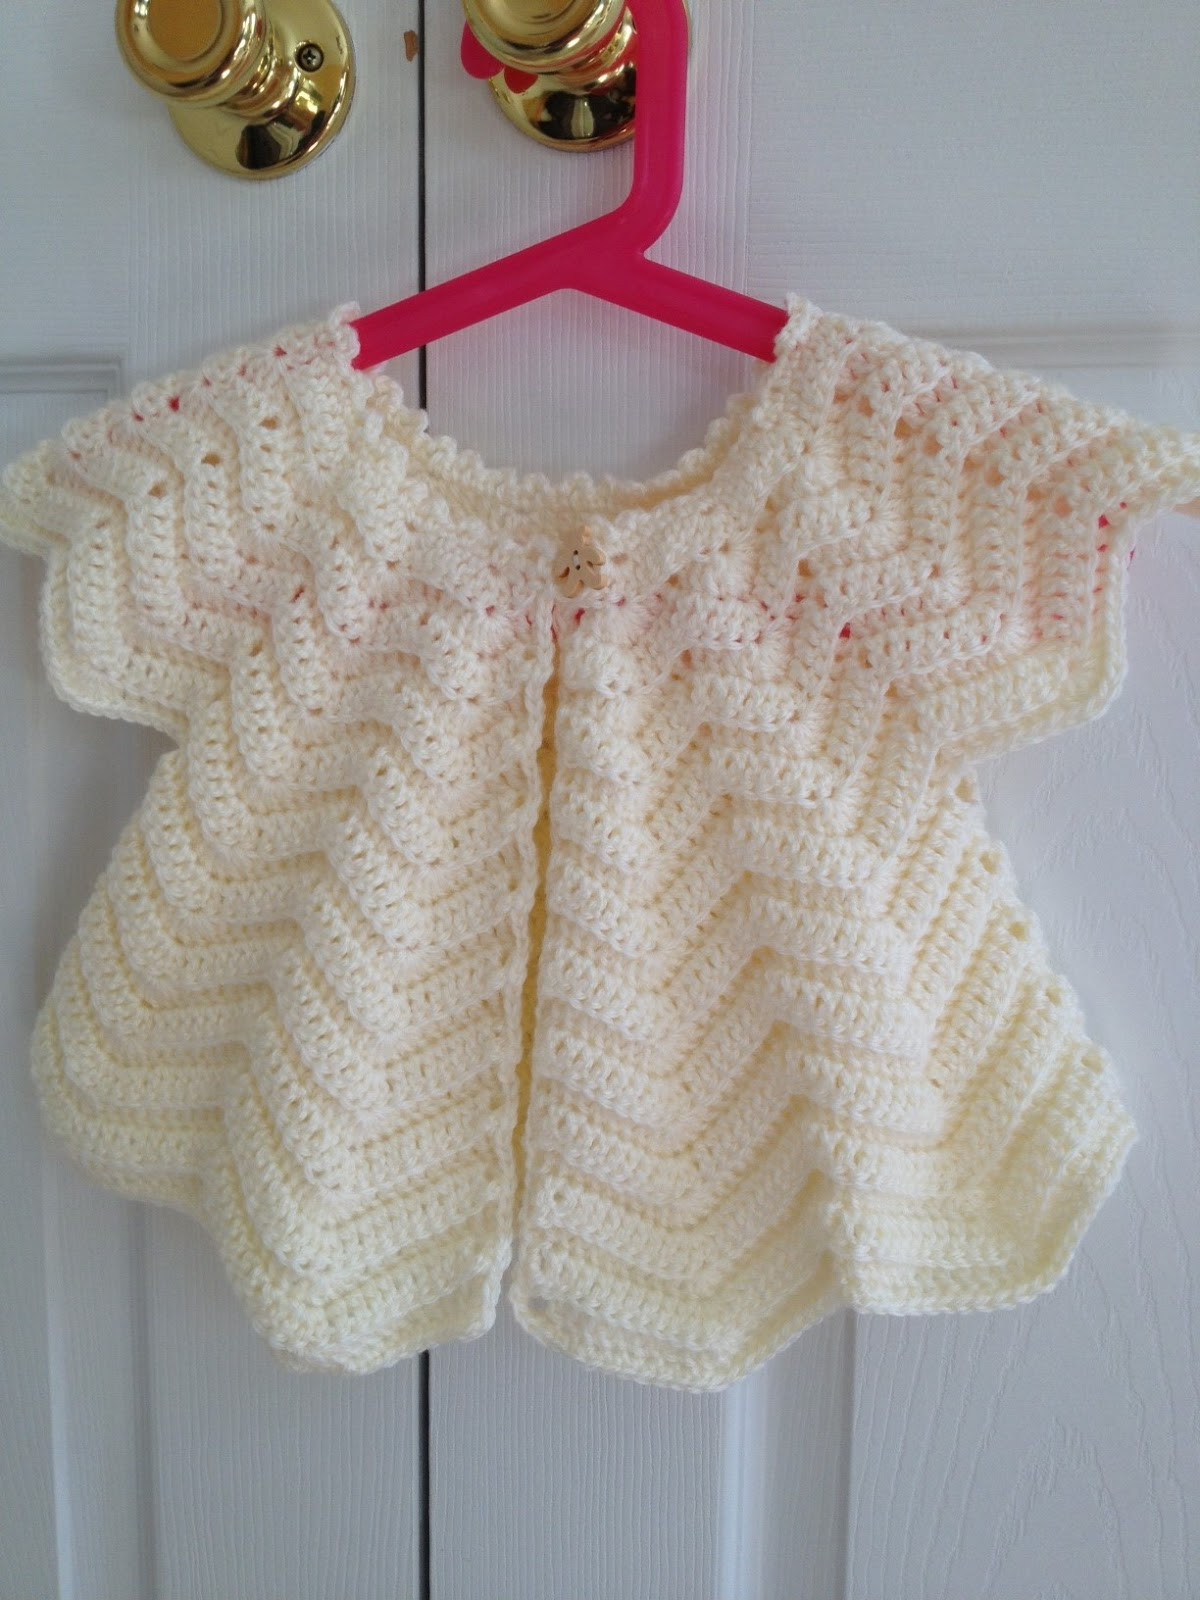 Awesome Agnes Gurumi Emmy S Baby Cardigan Free Pattern Free Crochet toddler Sweater Patterns Of Charming 50 Models Free Crochet toddler Sweater Patterns